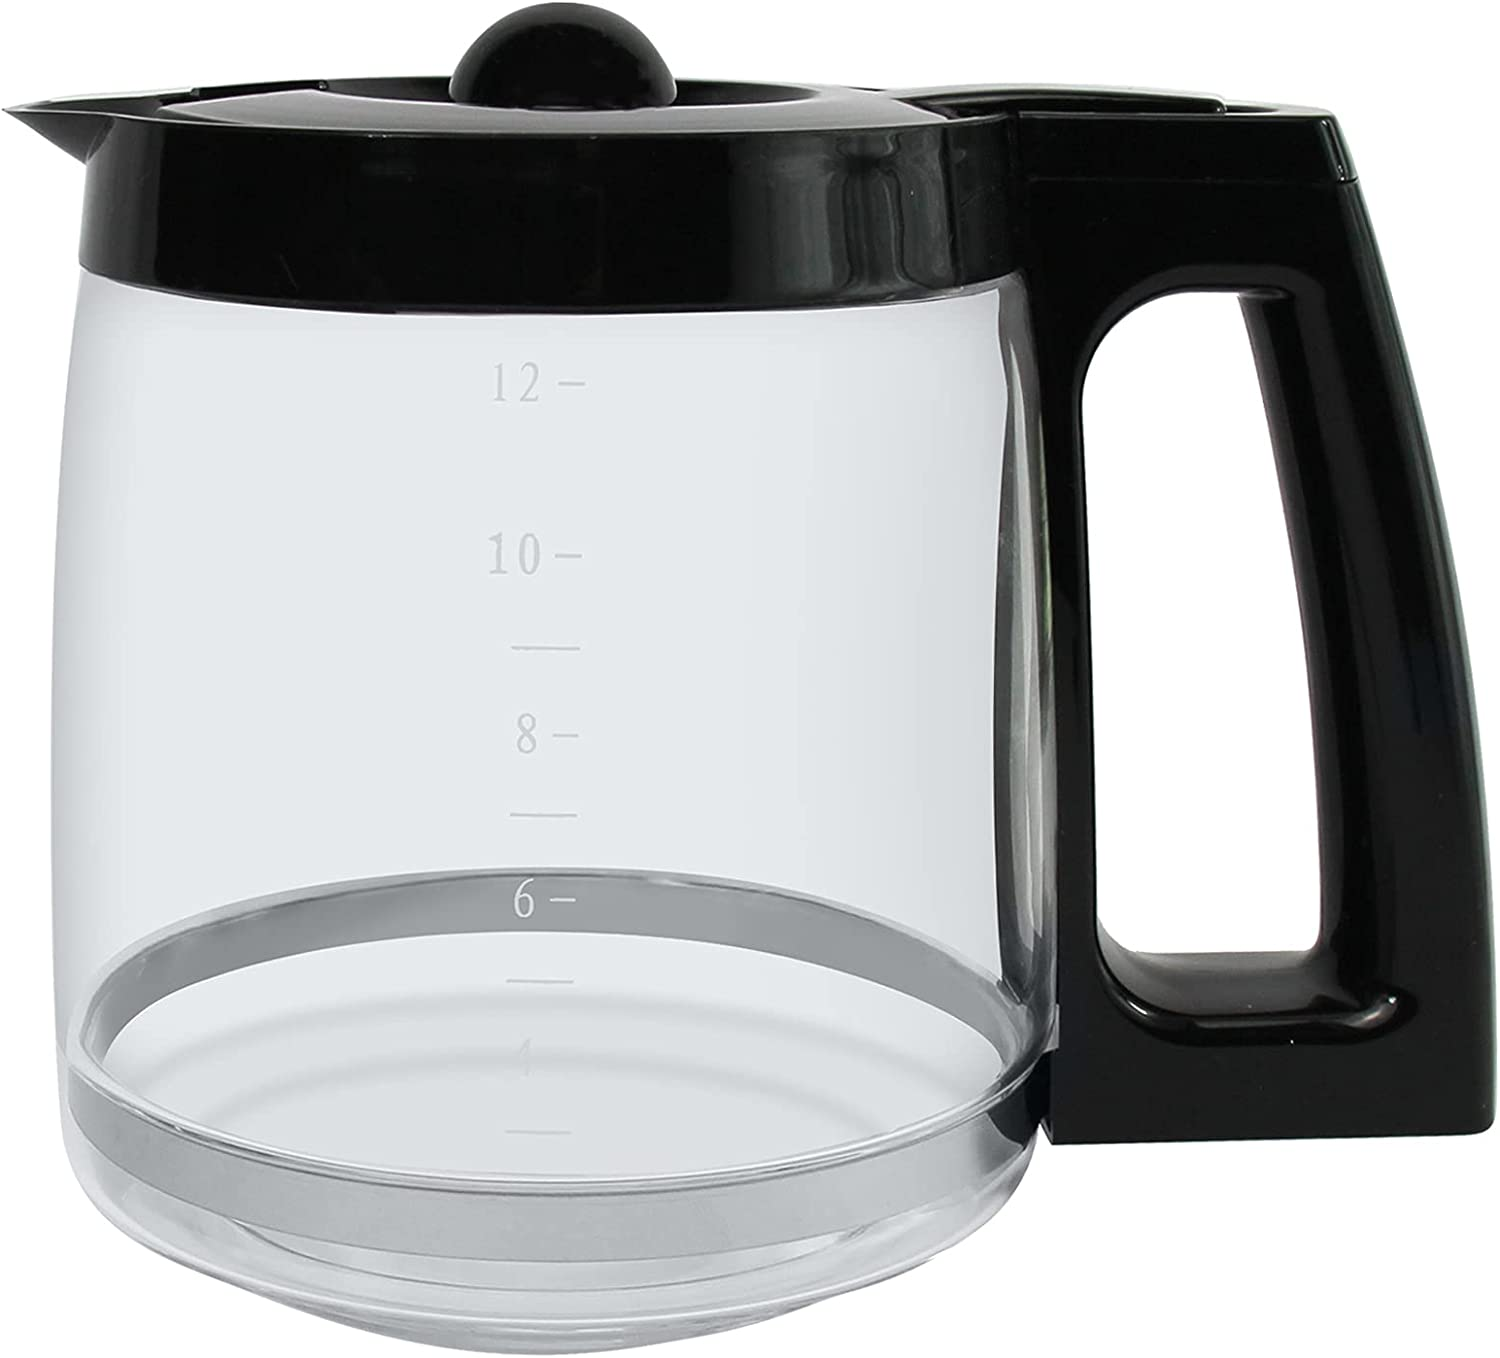 Ulrempart 12-Cup Replacement Glass Carafe | Compatible with Hamilton Beach Coffee Maker Pot | Fit for Models 49980A, 49980Z, 49983, 49618, 46300, 46310, 49976, 49966, 49350 | Black